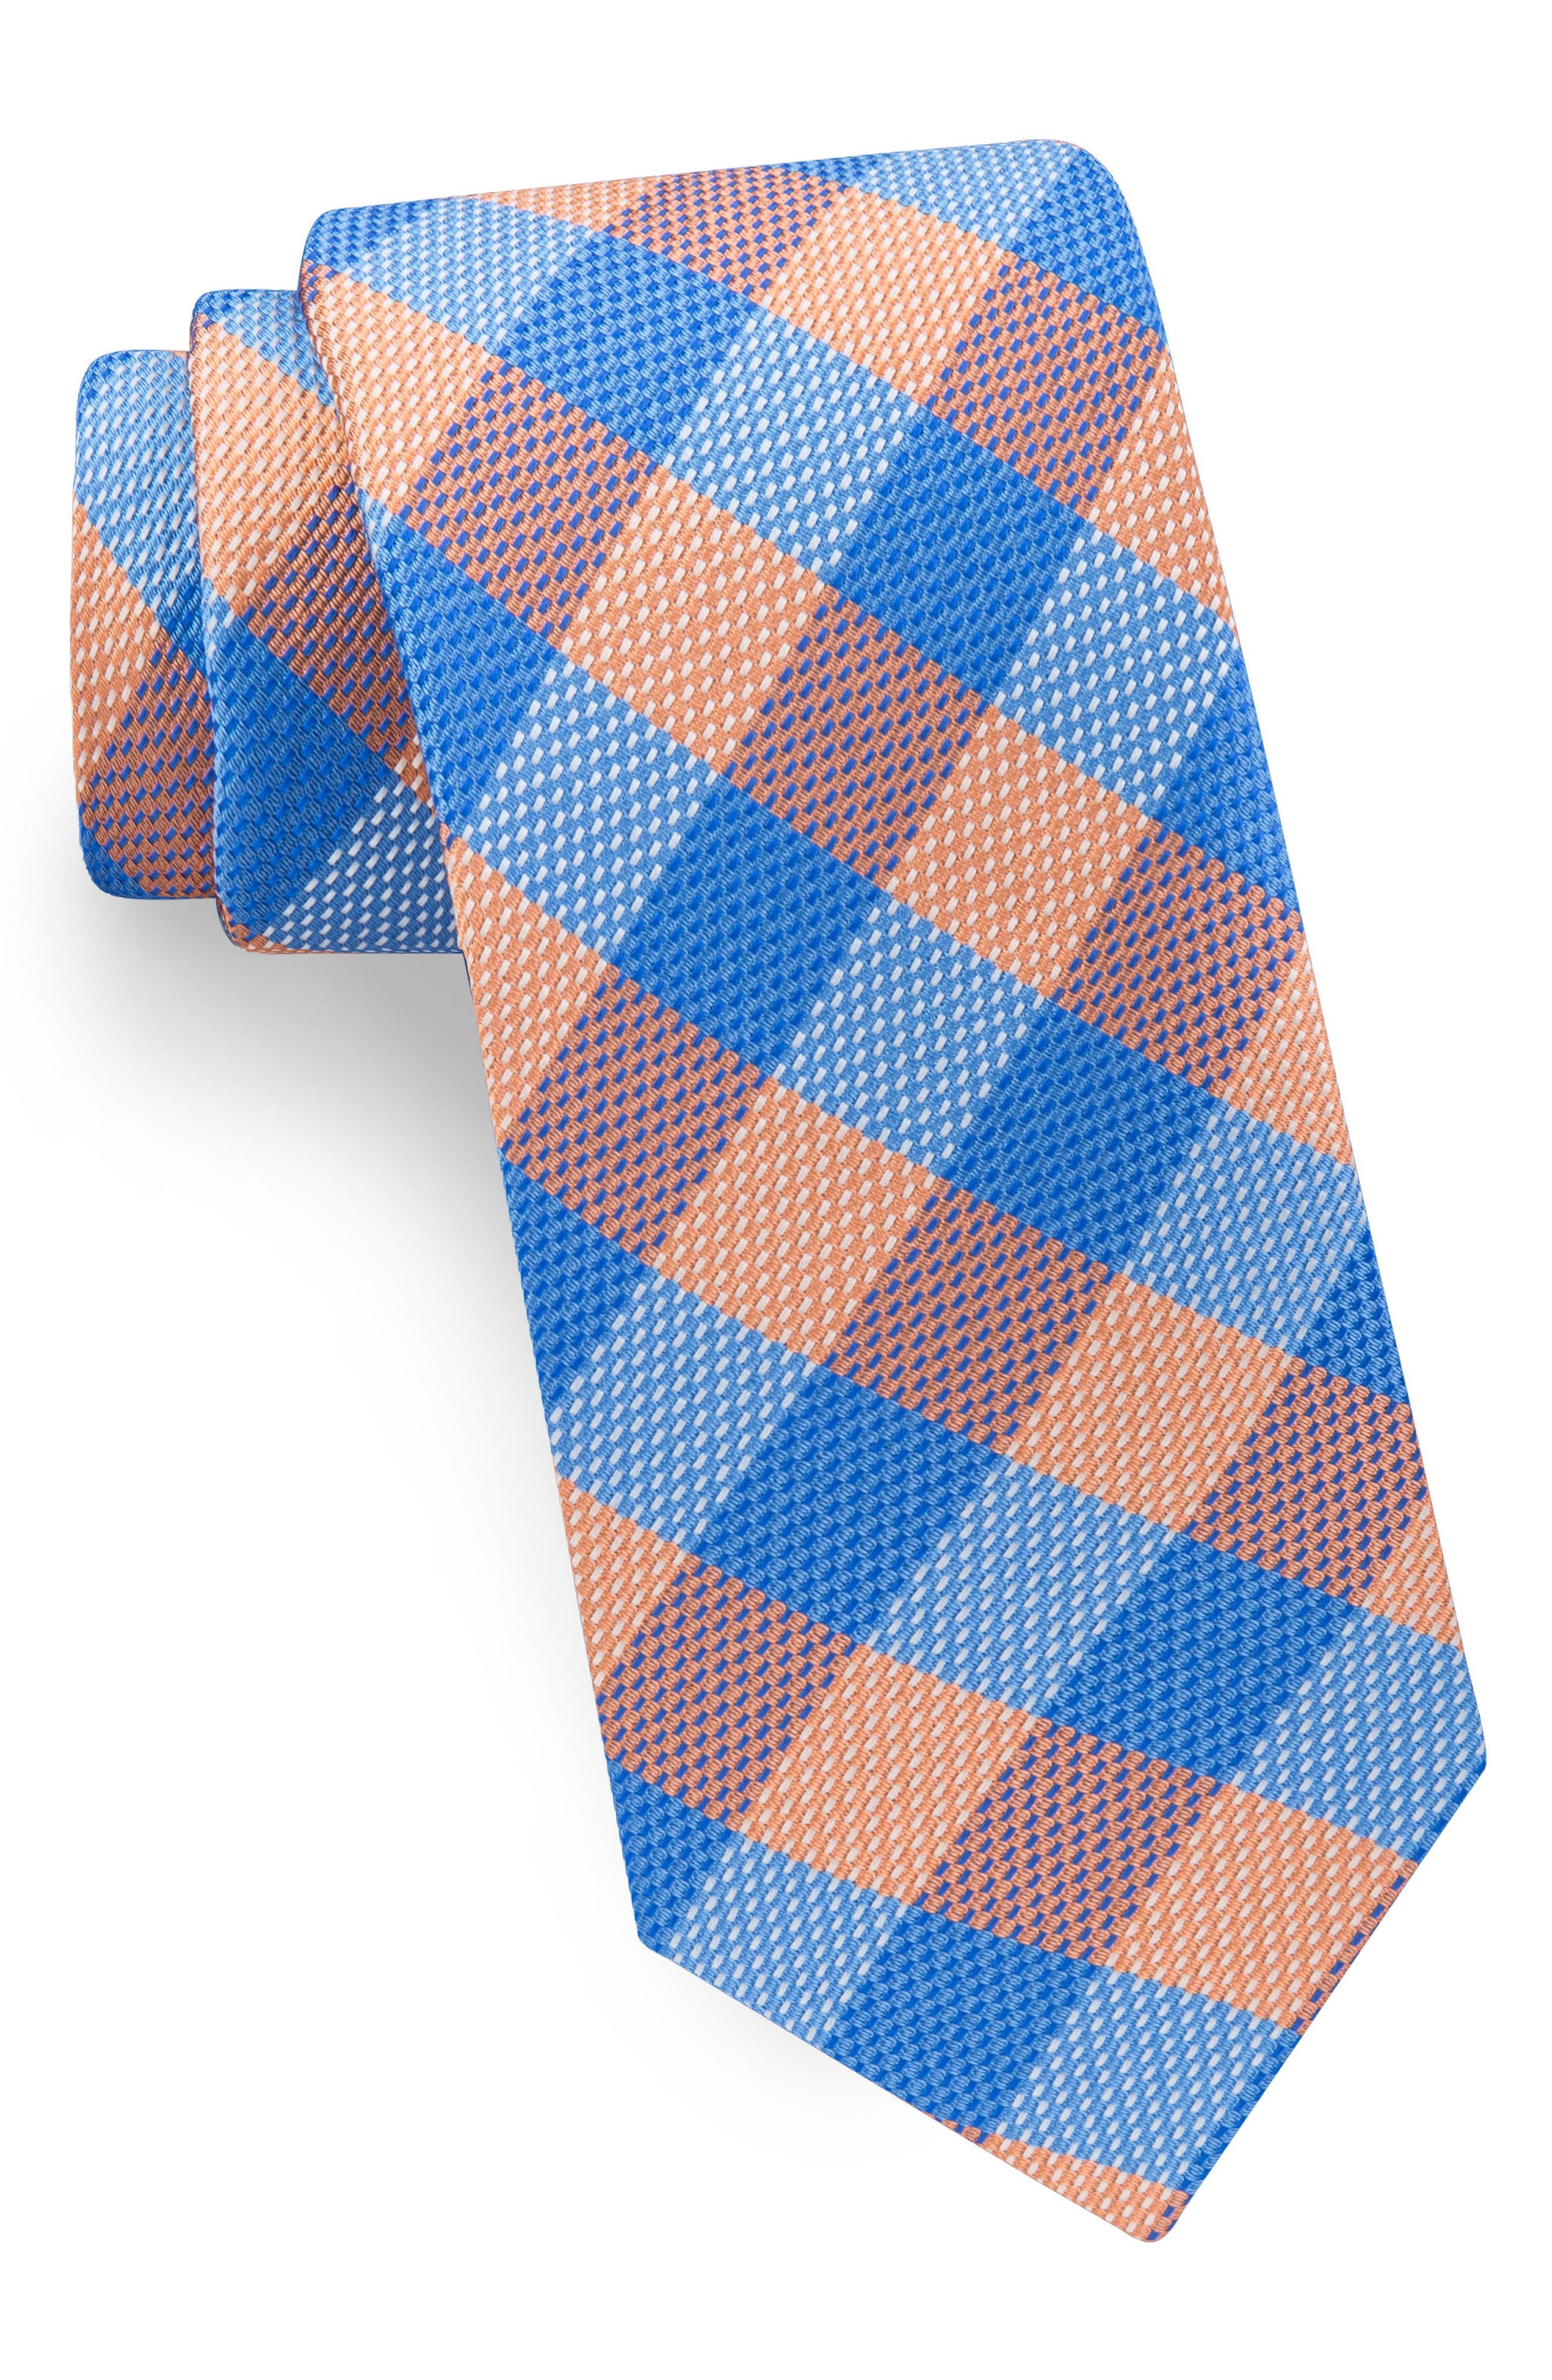 Derby Check Silk Tie,                             Main thumbnail 1, color,                             Orange/ Blue